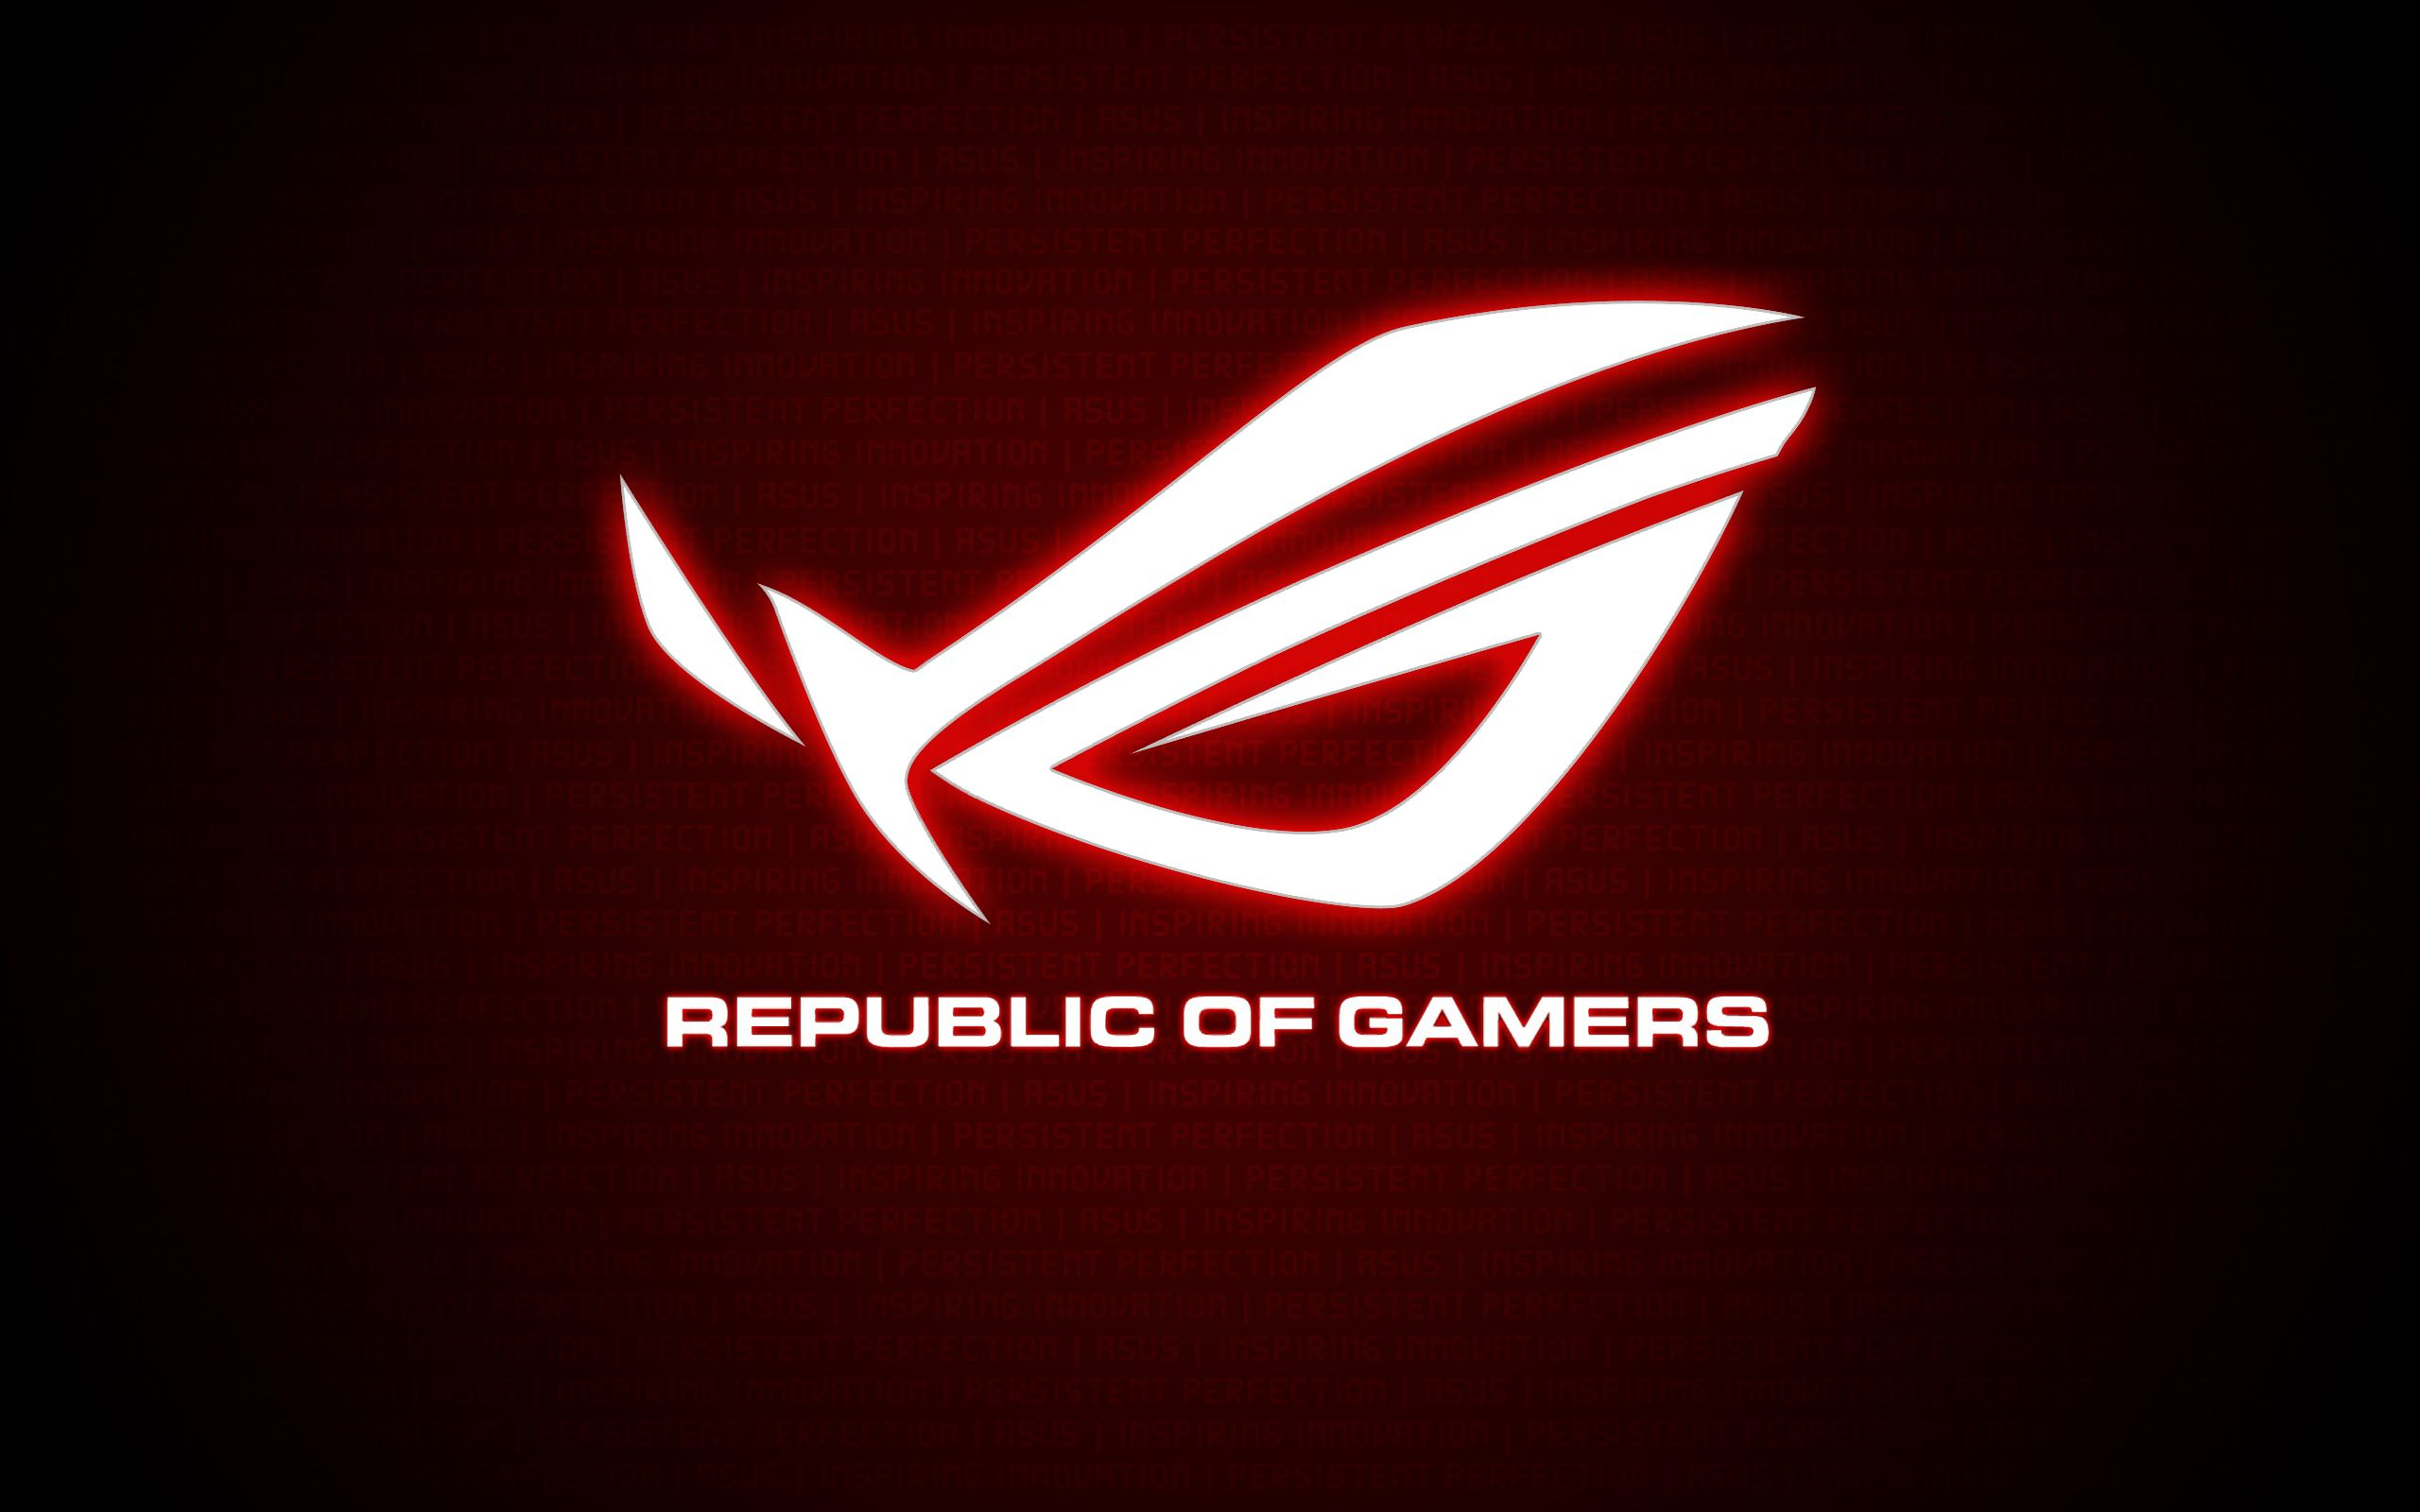 Red Asus RoG Wallpaper Produk apple, Gambar pensil, Gambar